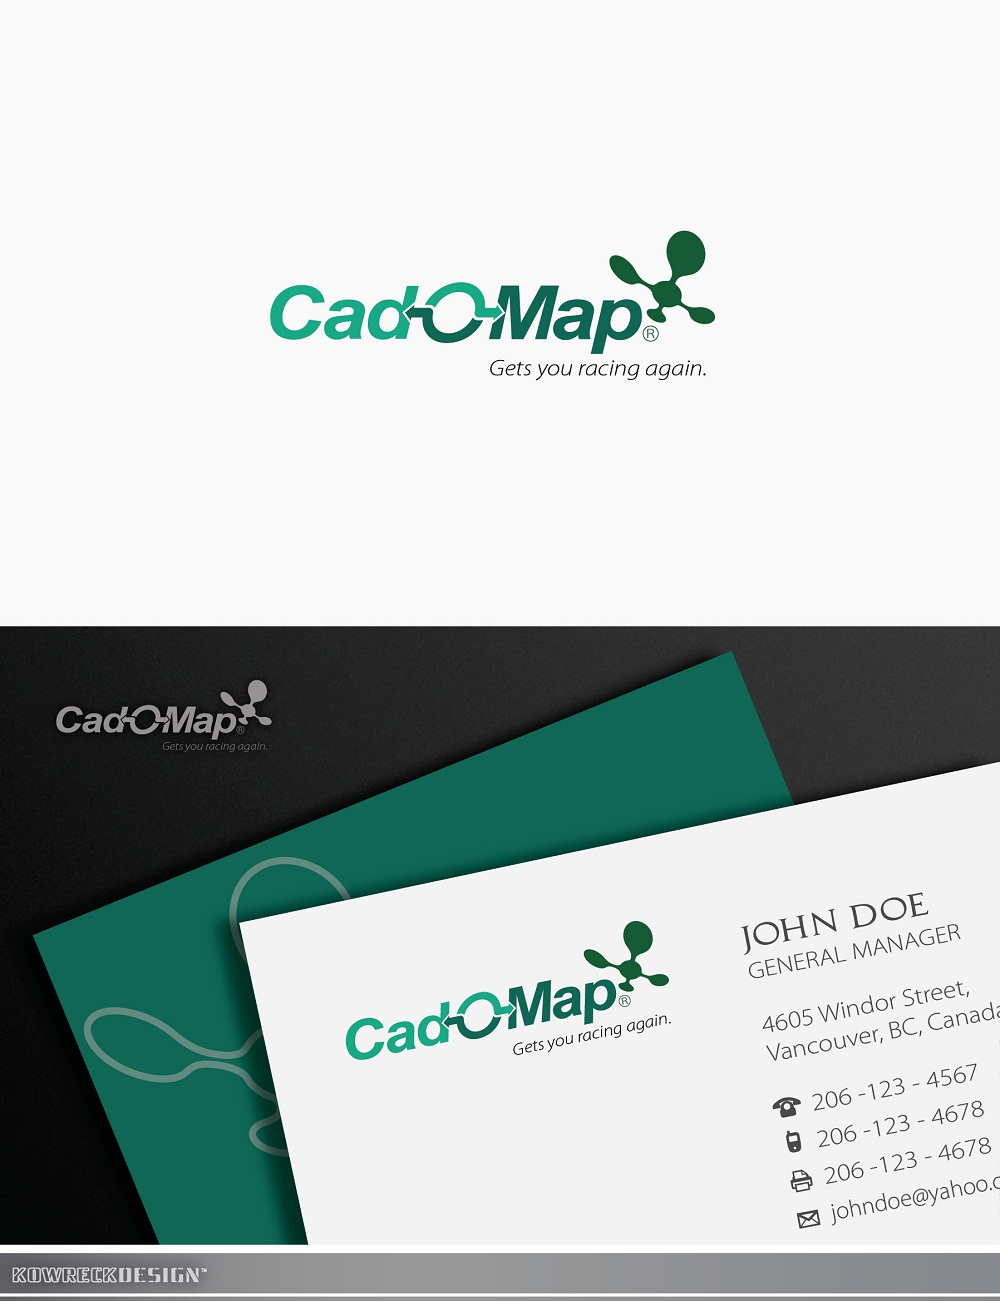 Logo Design by kowreck - Entry No. 157 in the Logo Design Contest Captivating Logo Design for CadOMap software product.